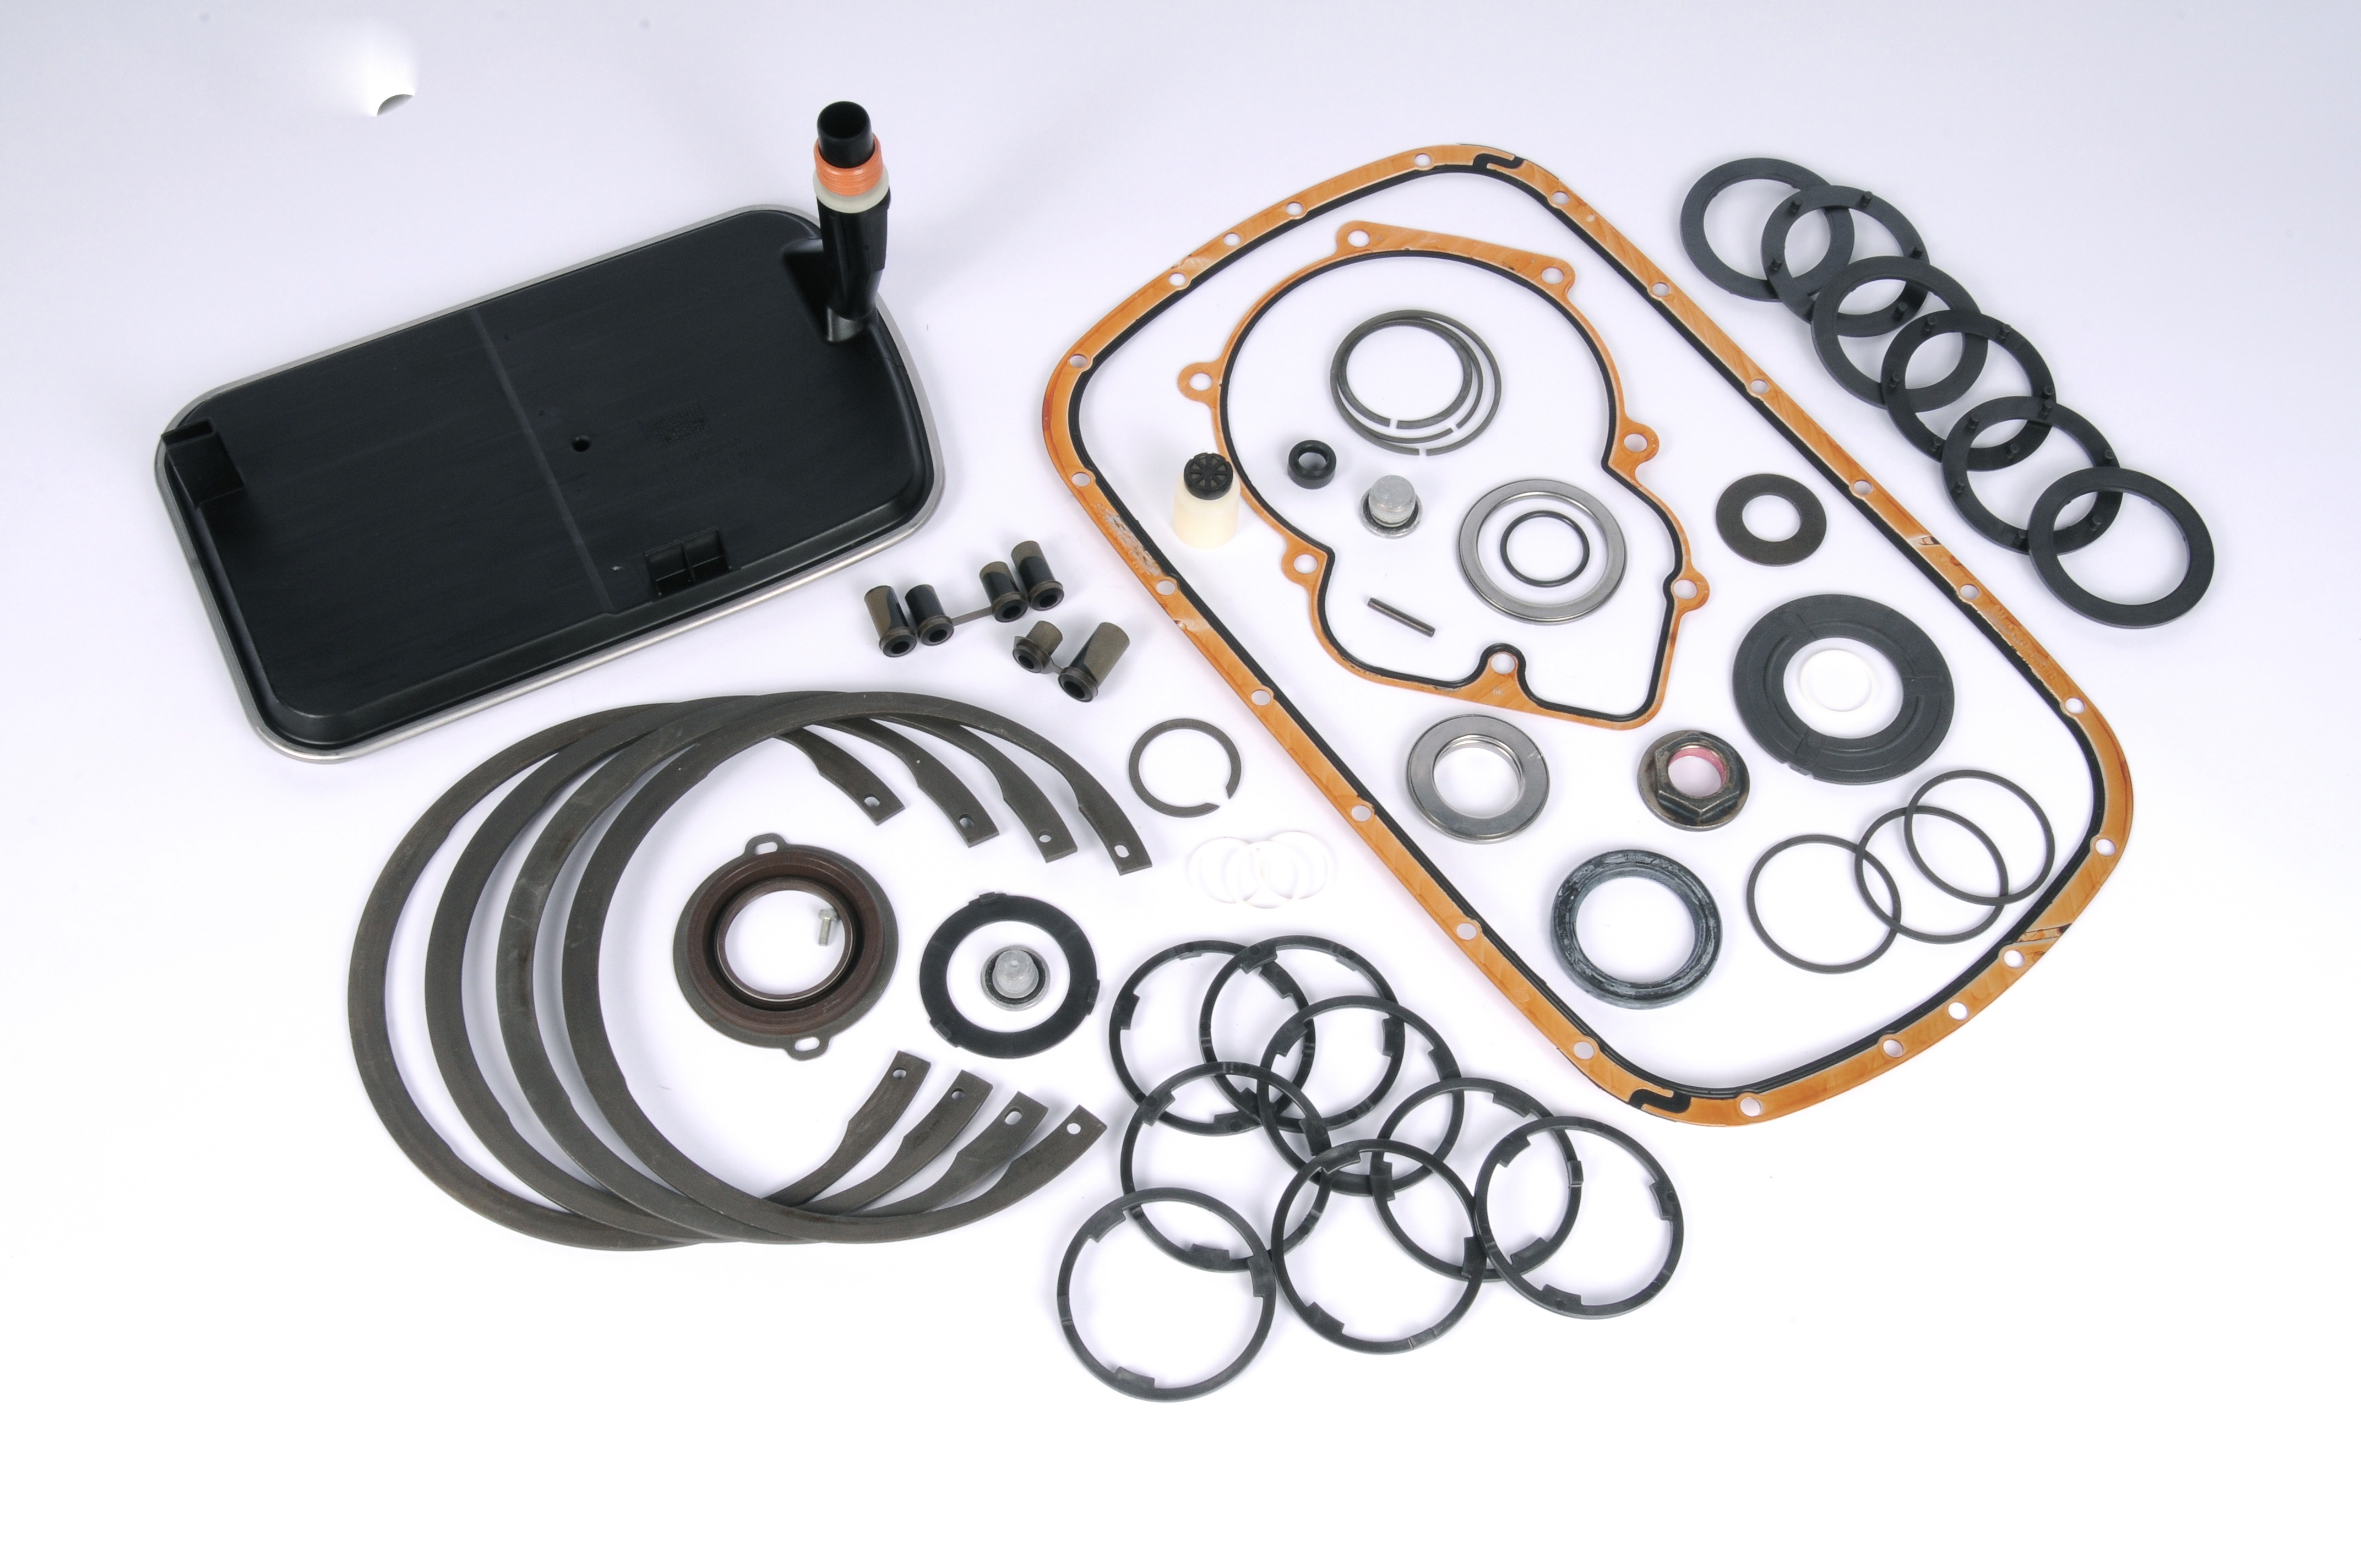 ACDELCO OE SERVICE - Auto Service Overhaul Trans Kit (w/ Gaskets, Seals, Retainers) - DCB 96042883